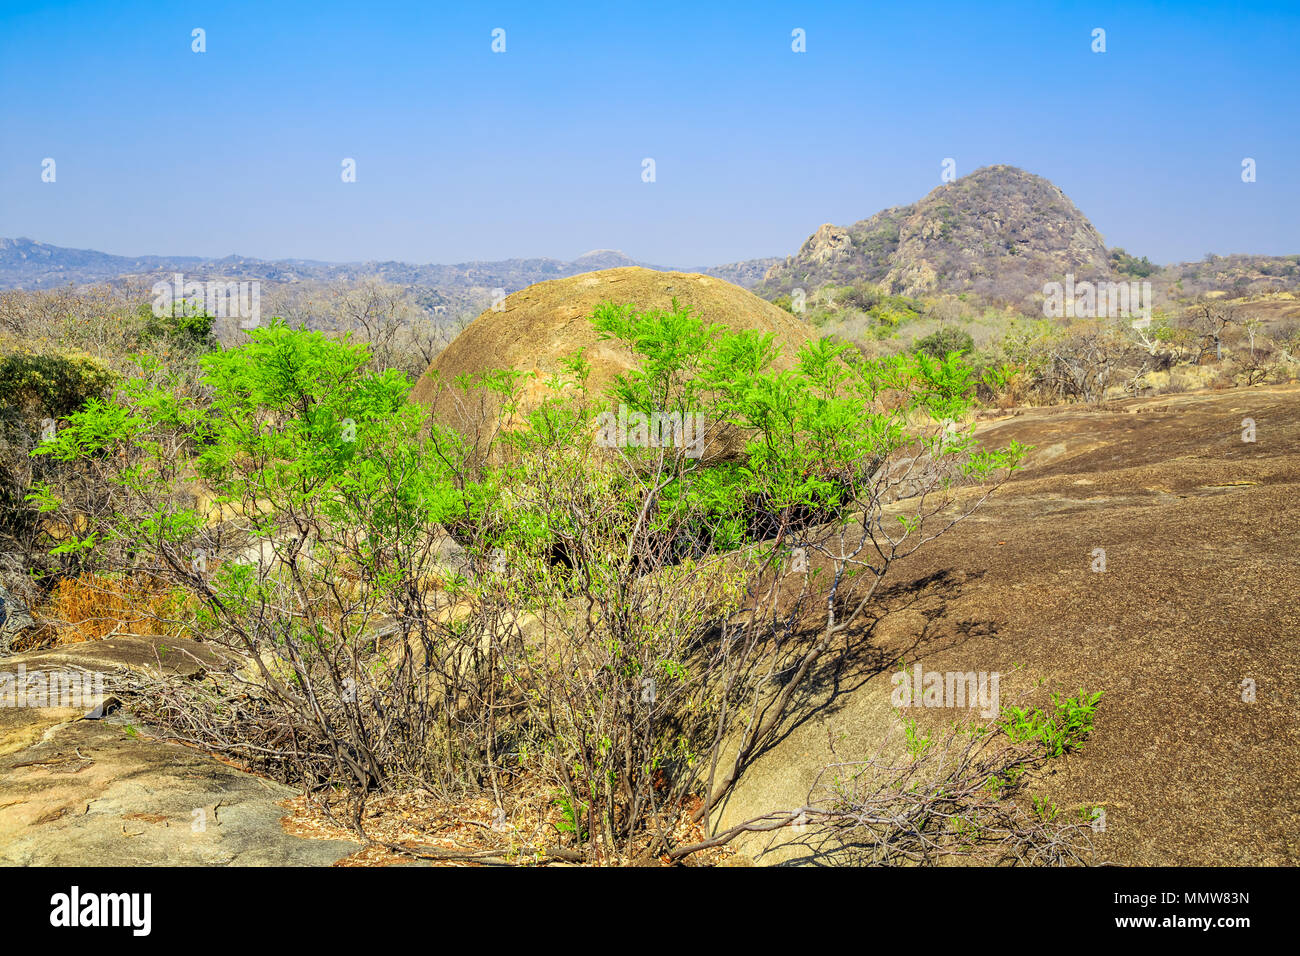 Landscape view of Matobo National Park, Zimbabwe, showing typical rock formations and foliage. - Stock Image